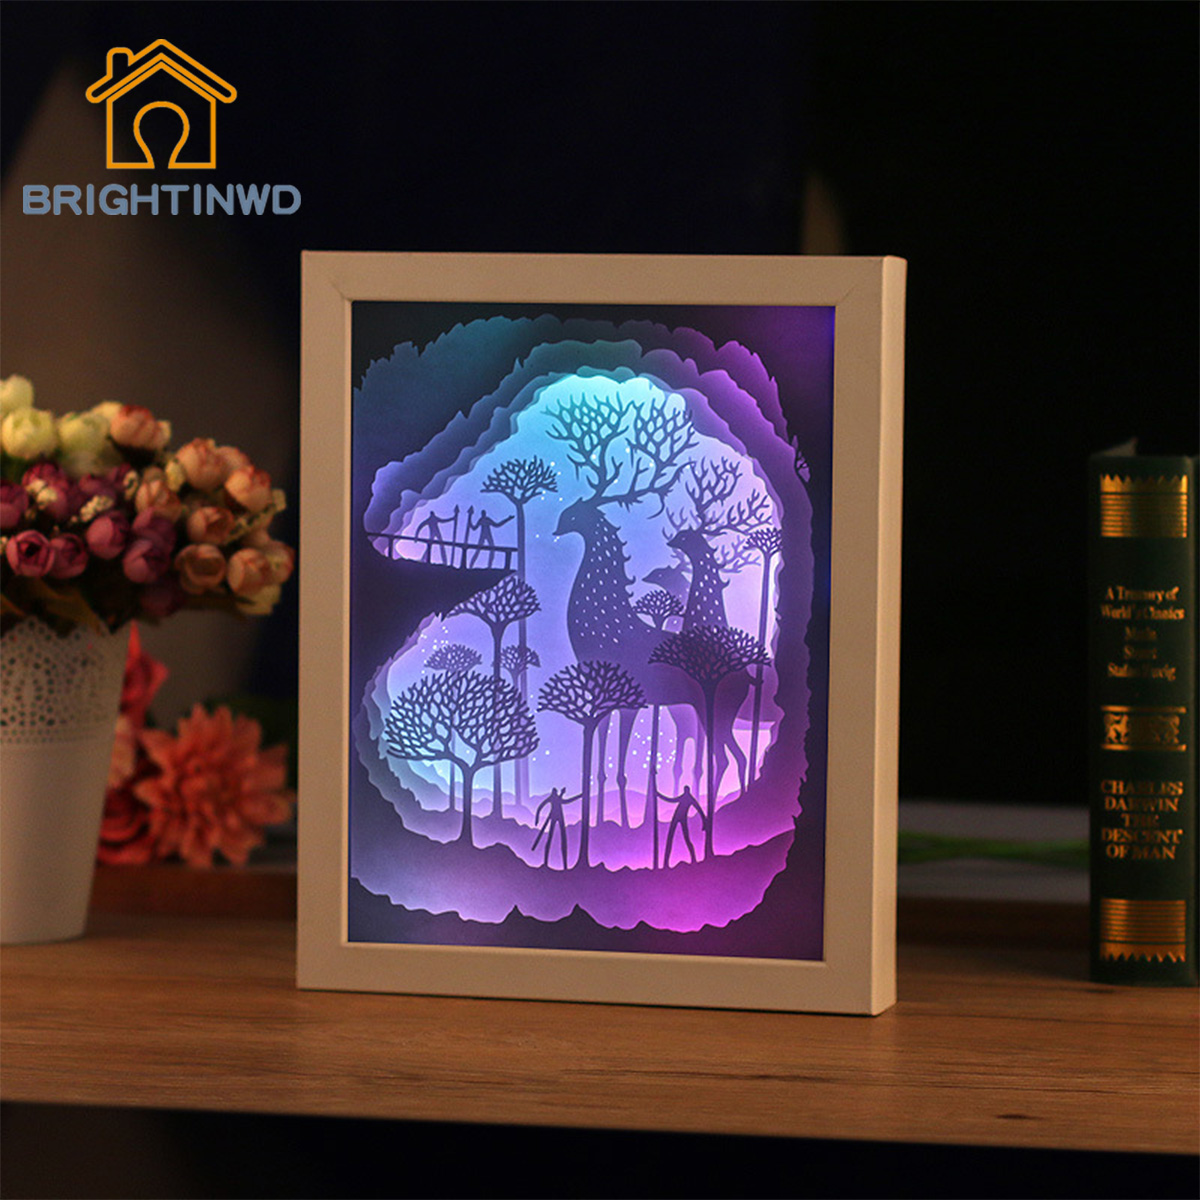 BRIGHTINWD 3D Light Shadow Paper Carving Paper Lamp Night Light Hollow Deer LED Energy-Saving Lamp